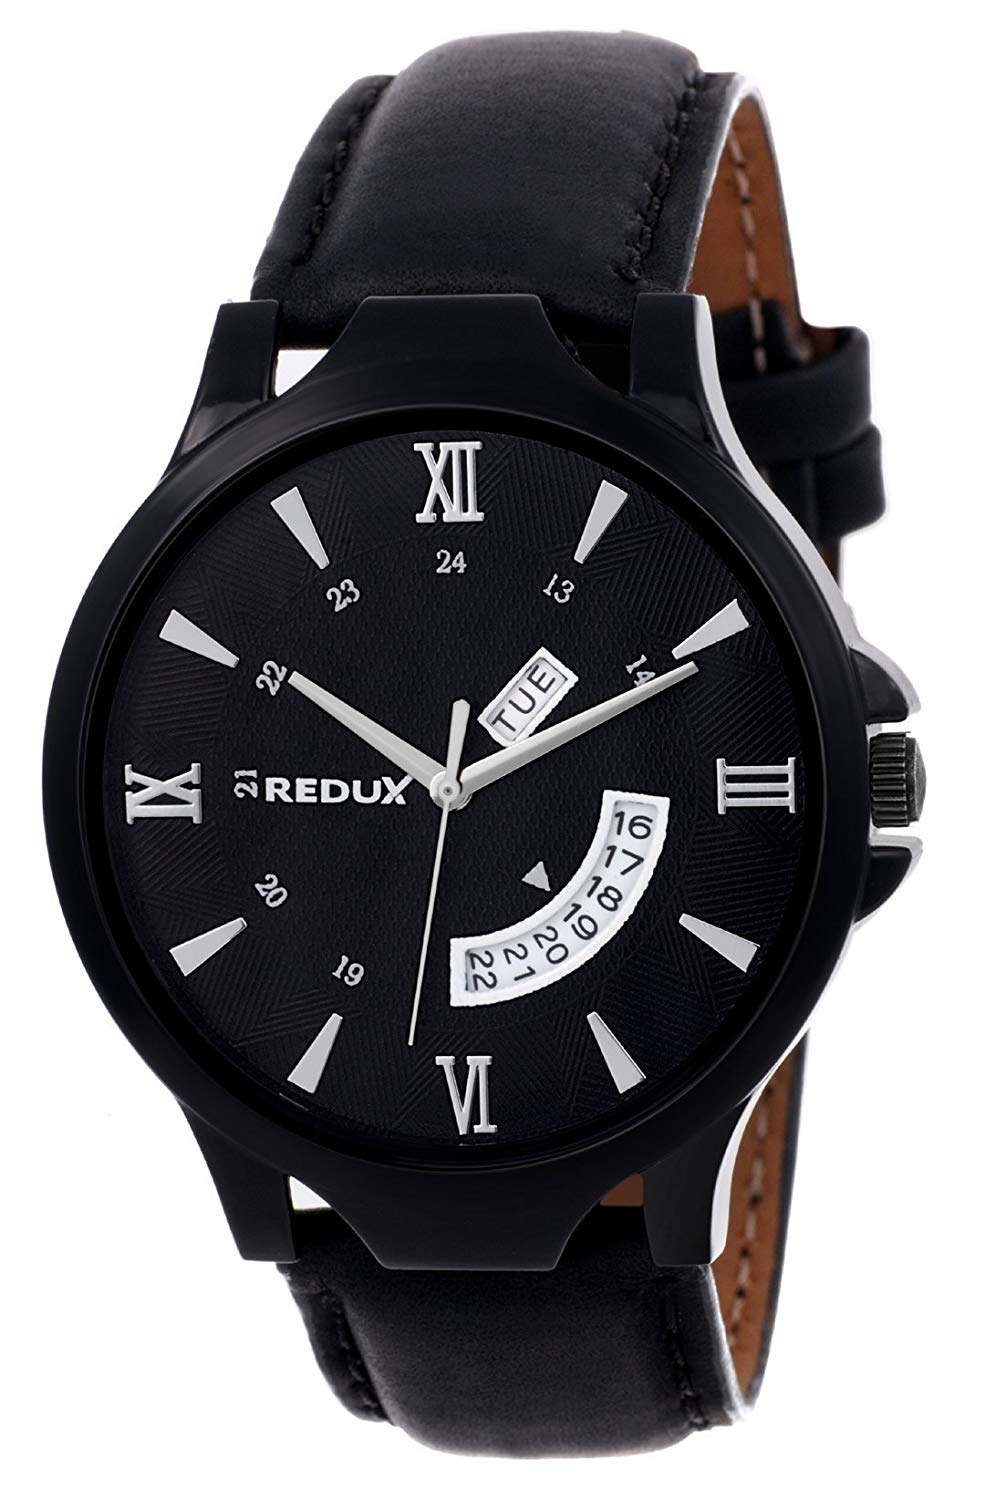 Redux Analogue Watch(IND)